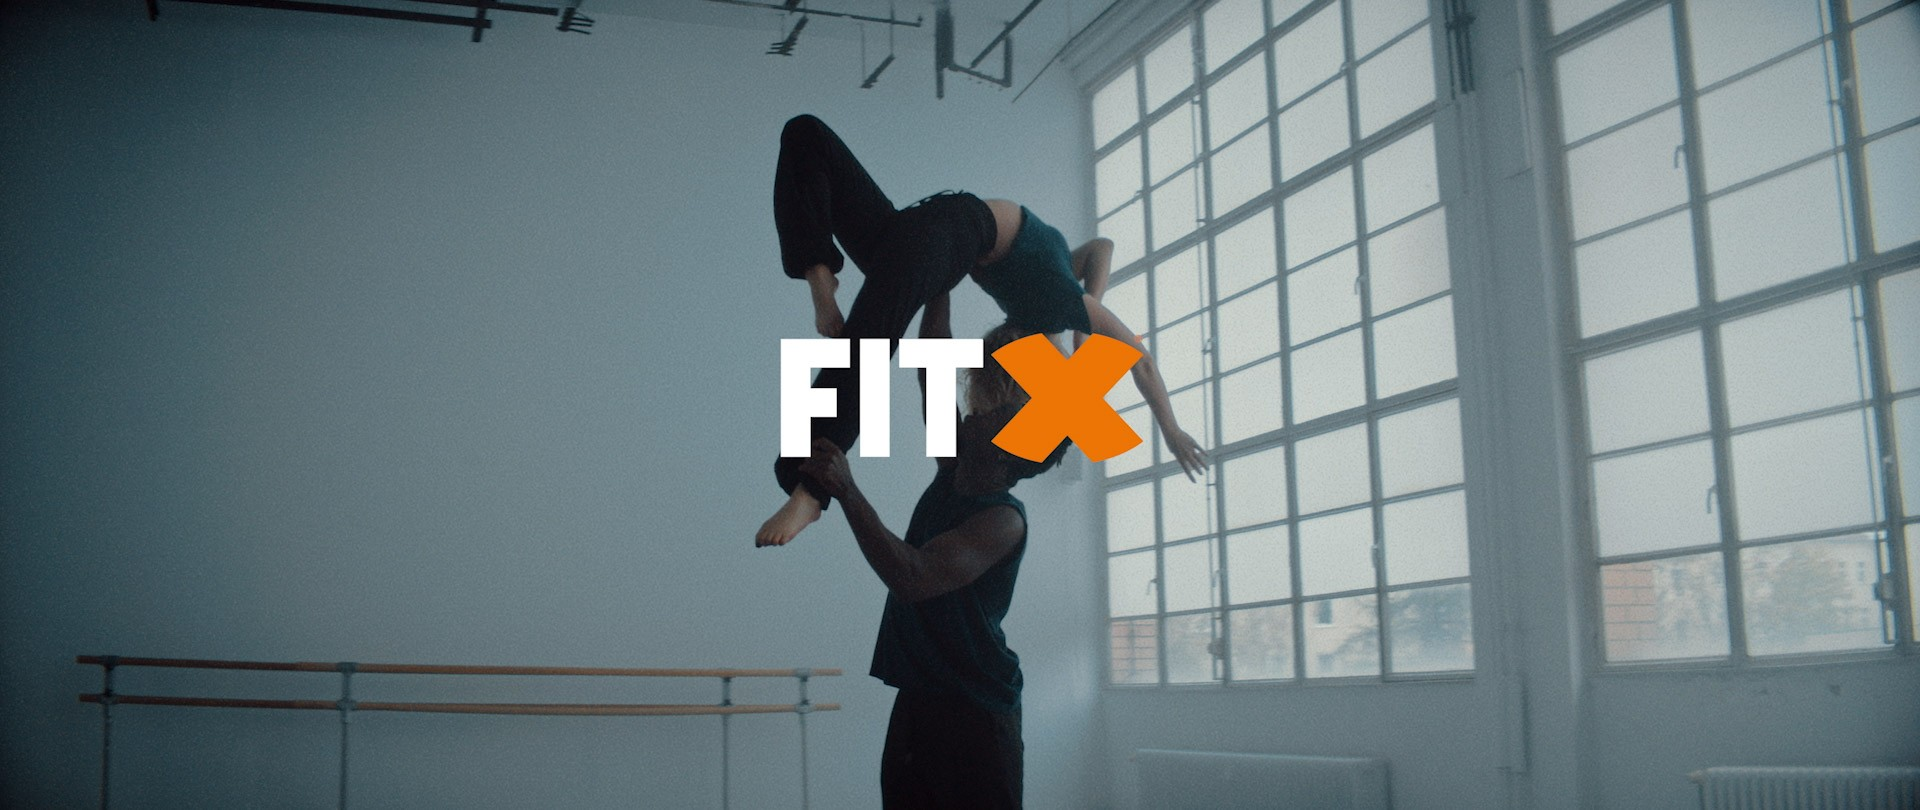 CEDRIC SCHANZE FOR ALL OF US – FitX